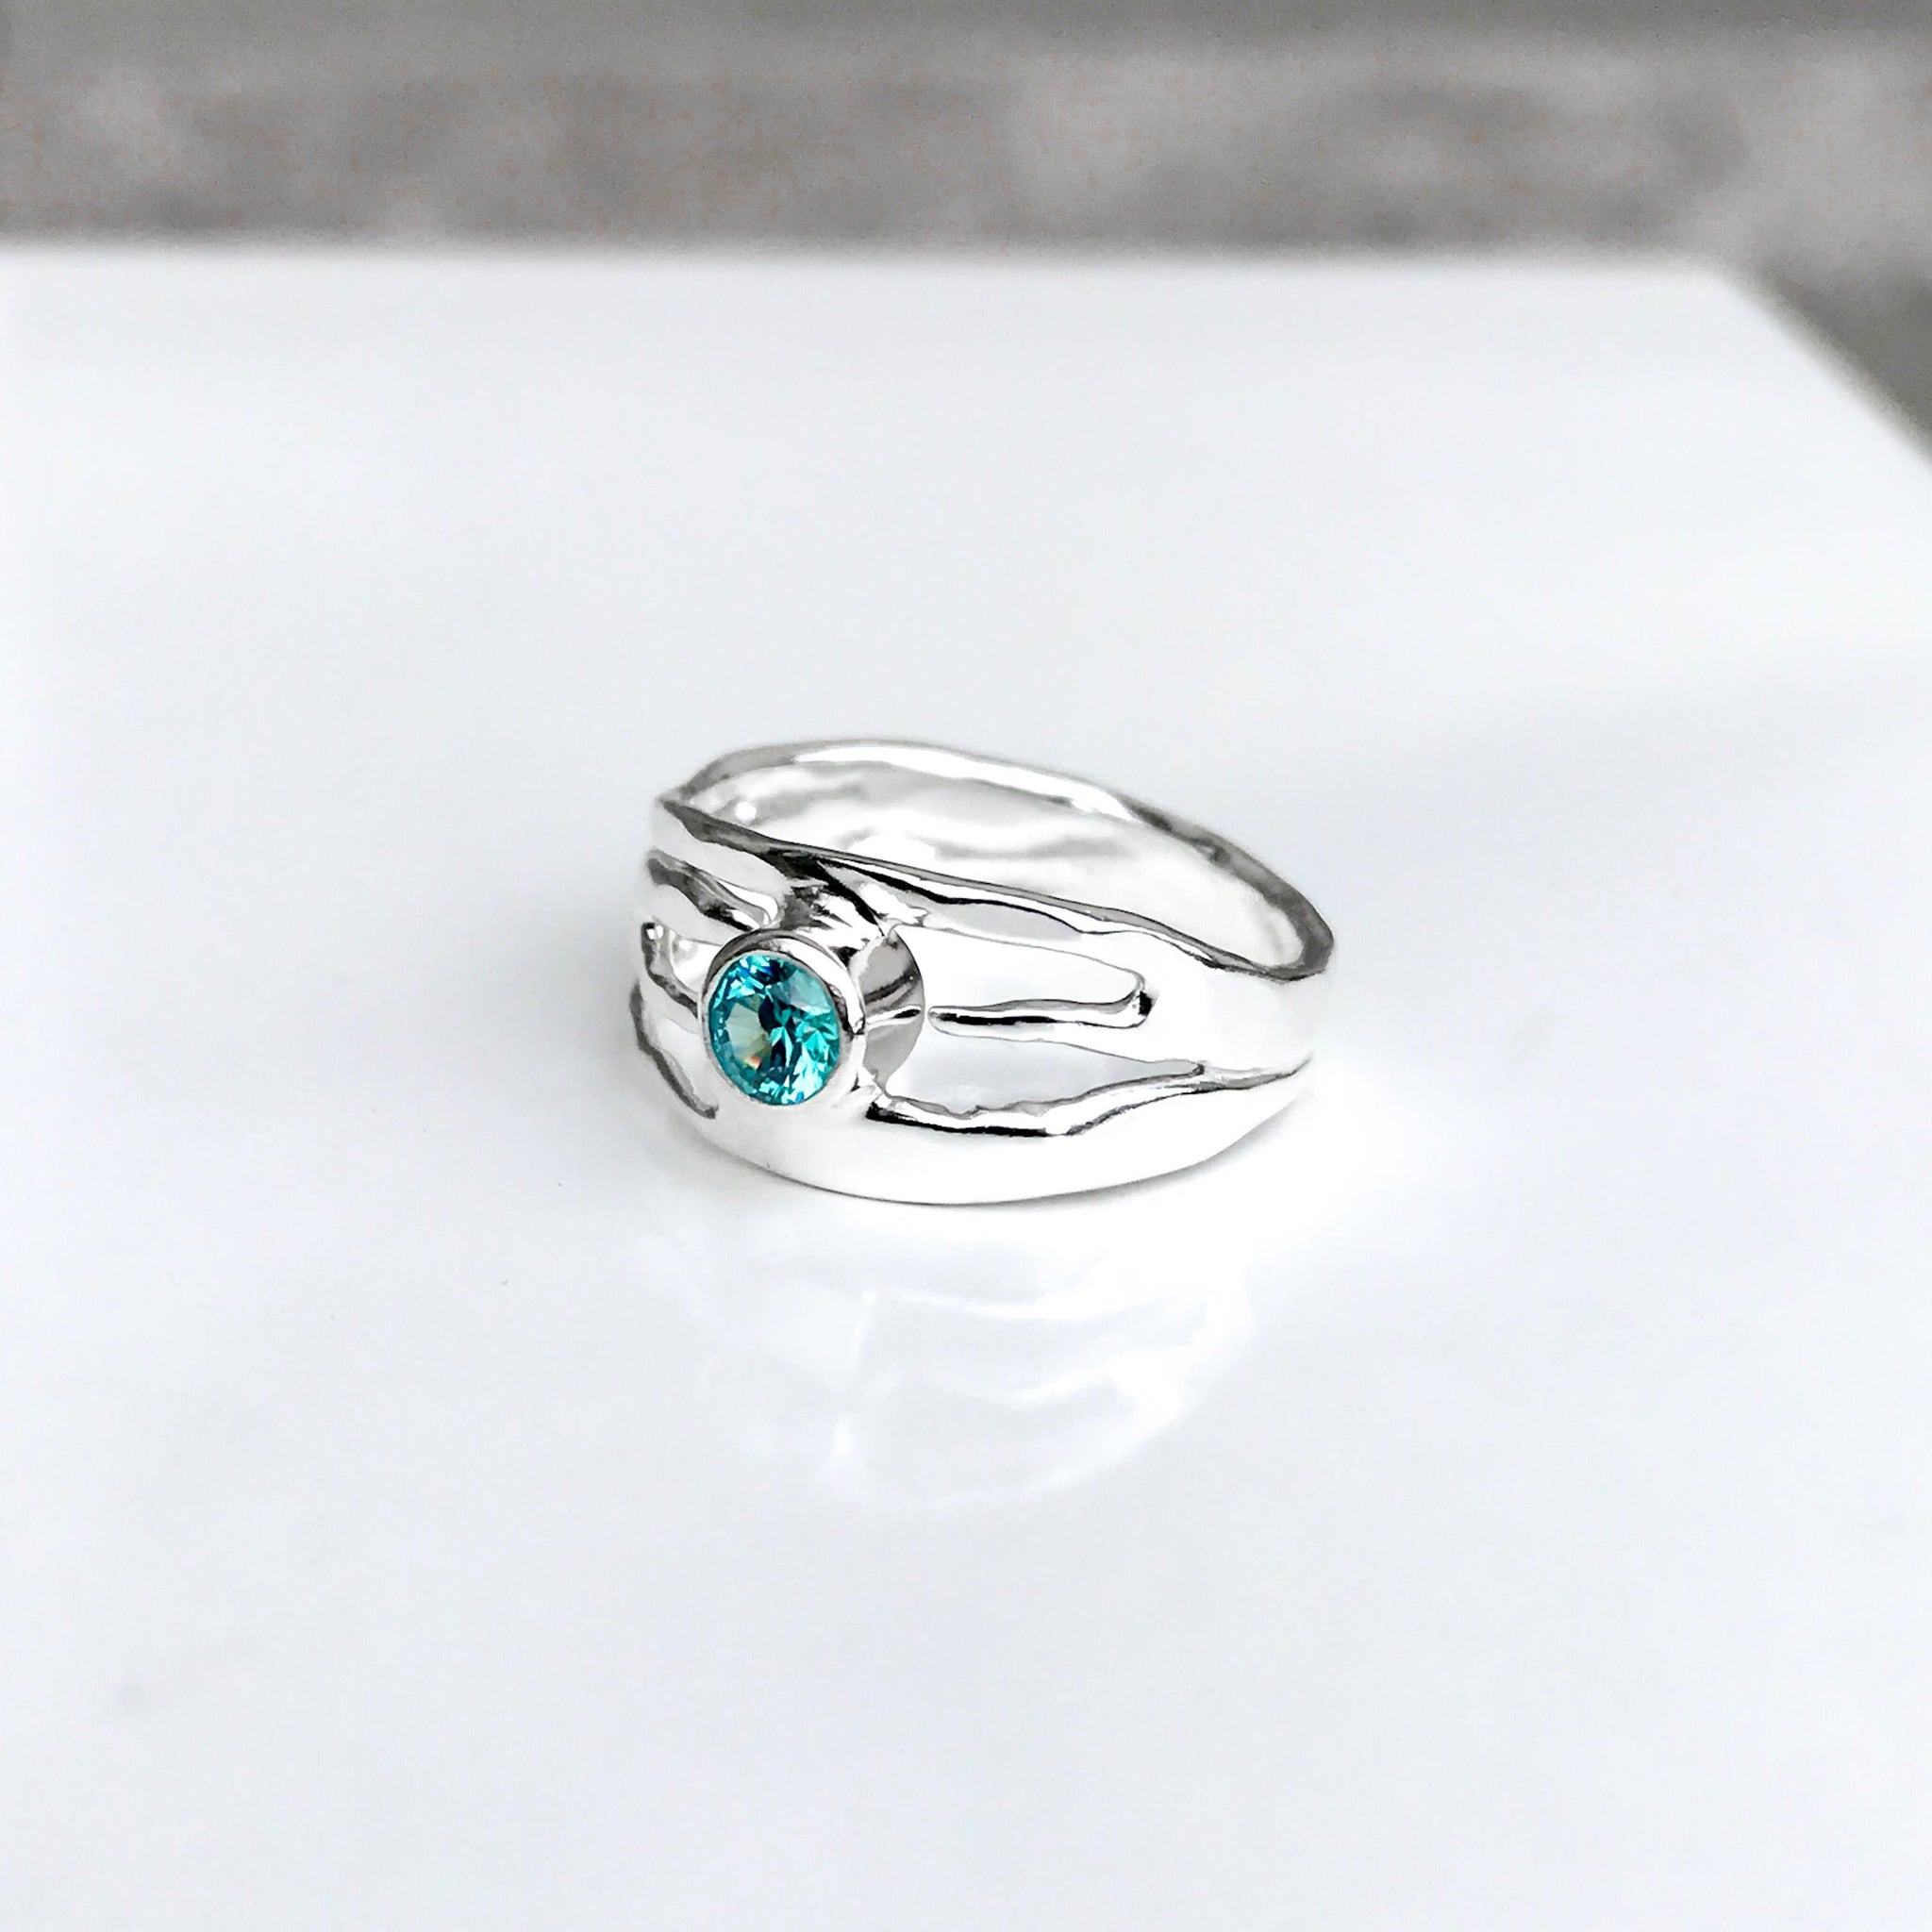 Sterling Silver Blue Topaz Ring - Organic Design